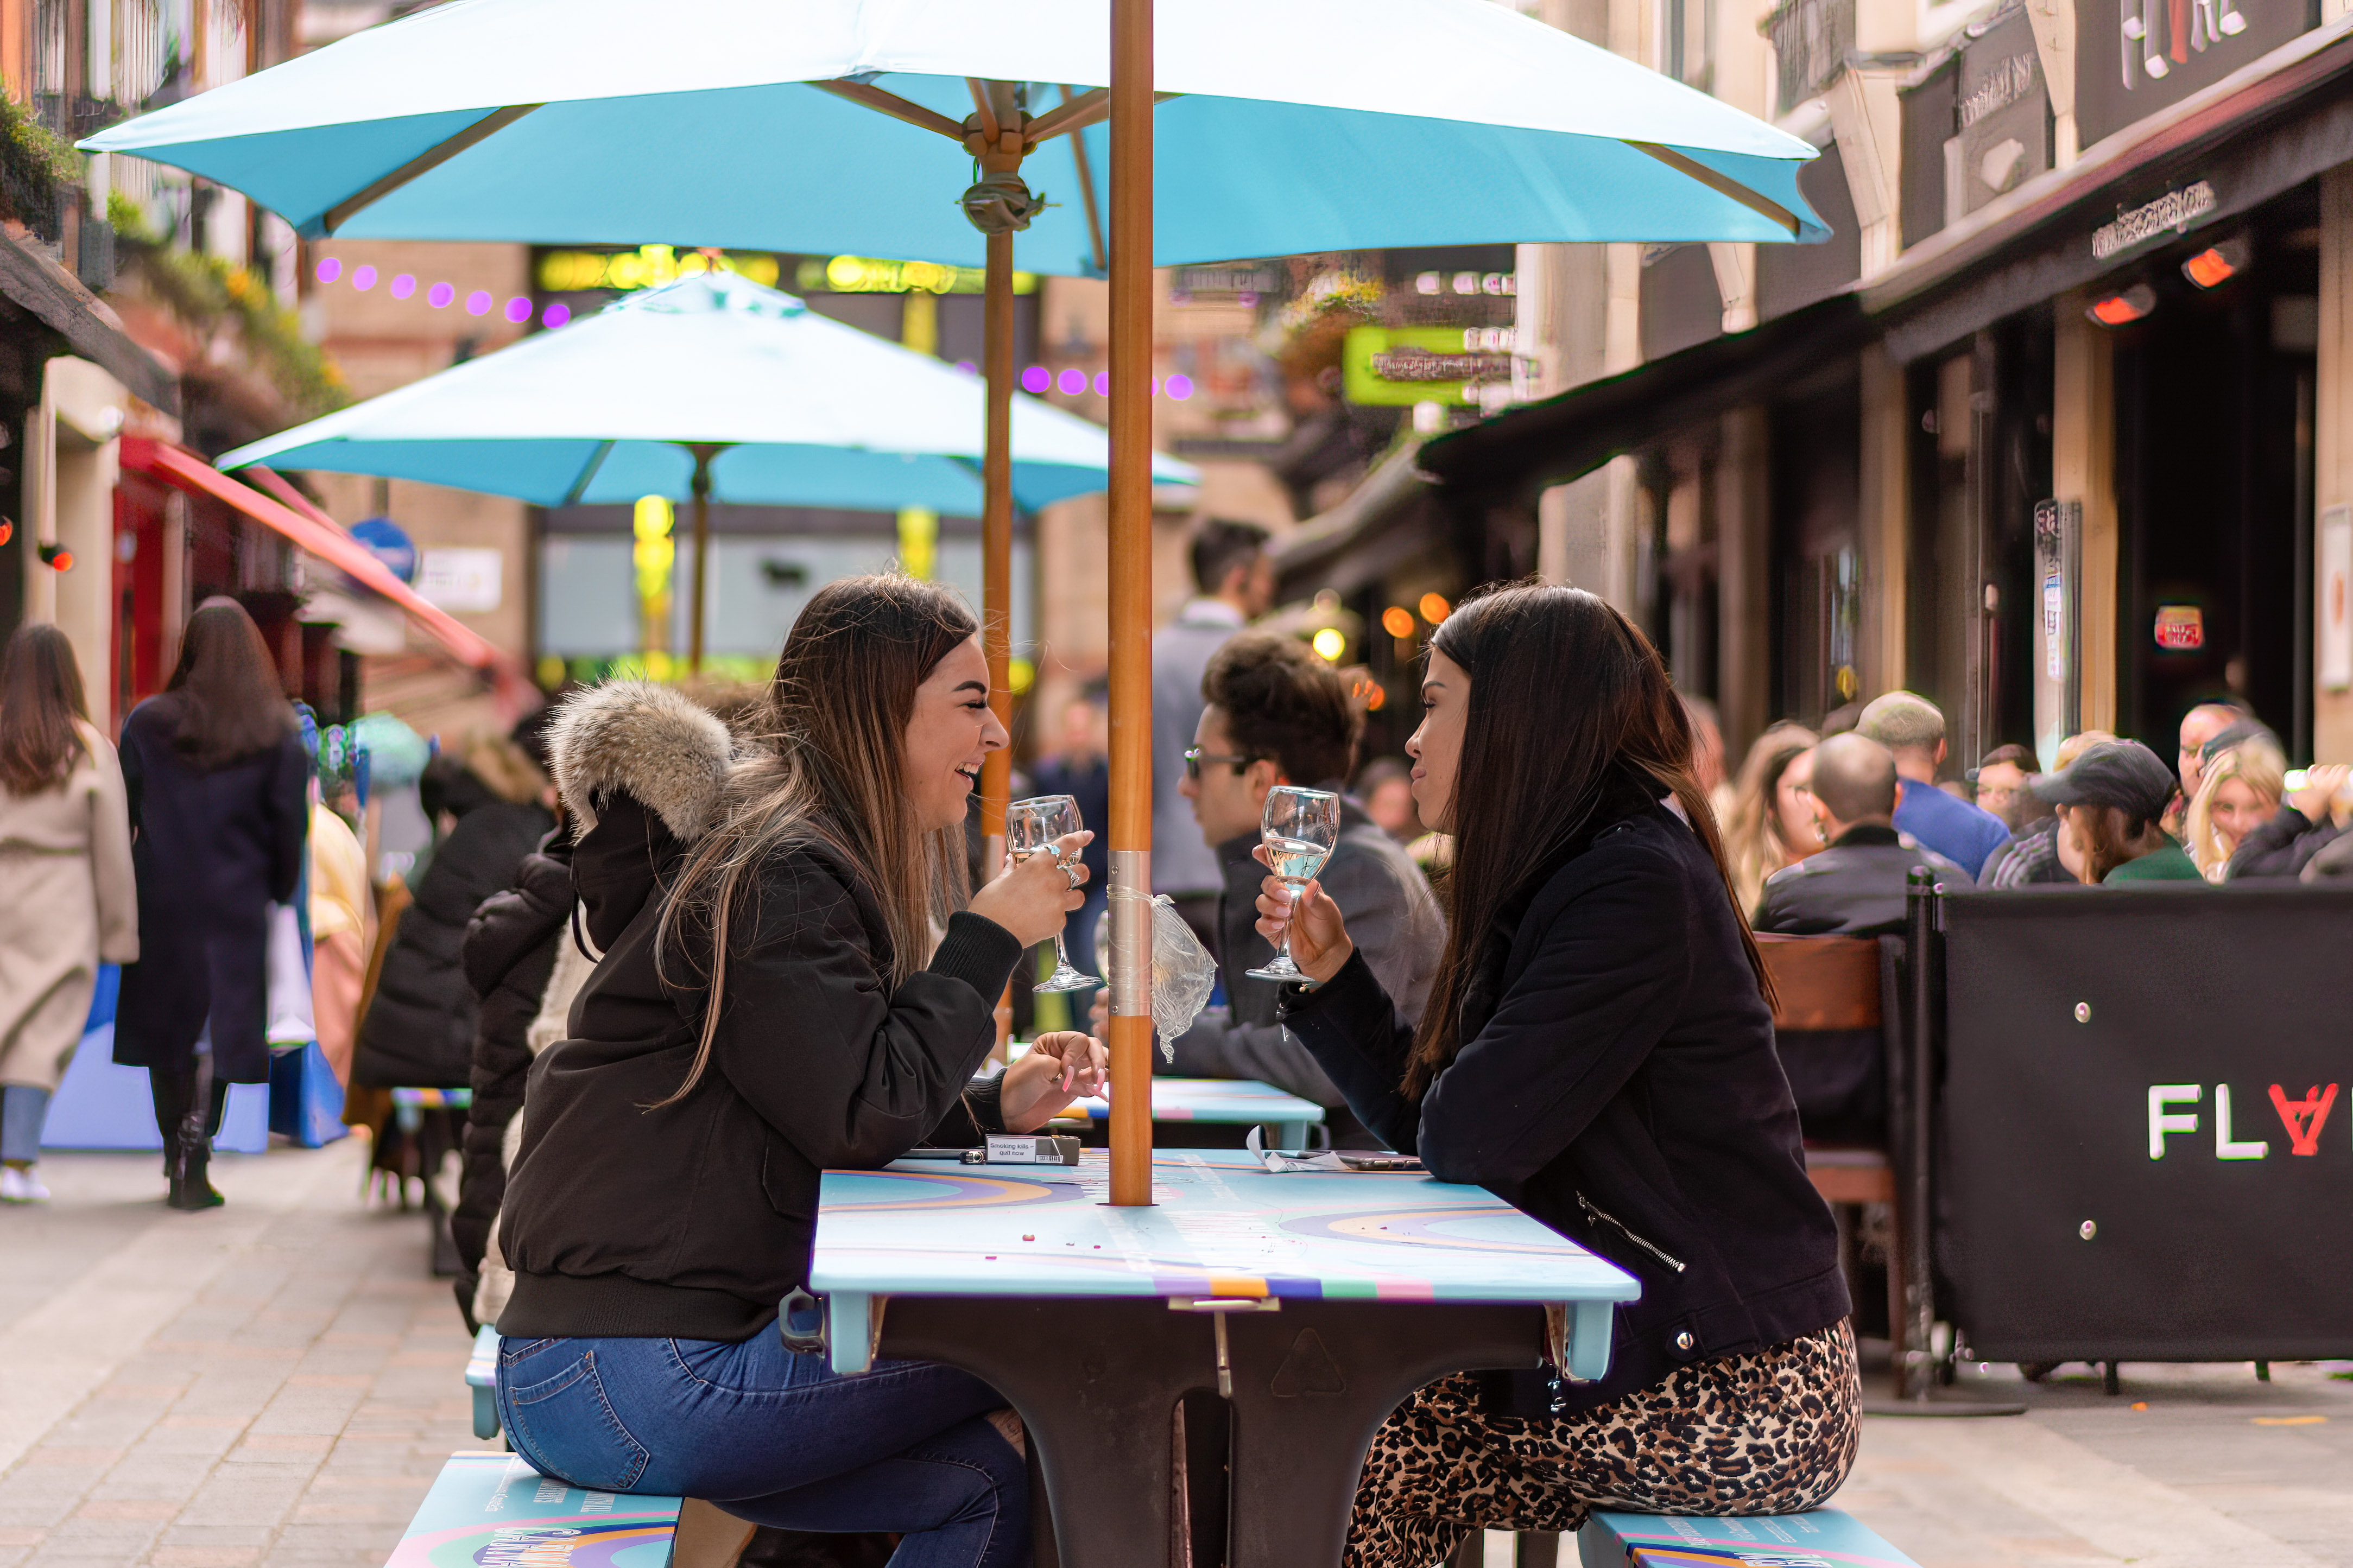 People enjoying food and drinks in Carnaby Street area.